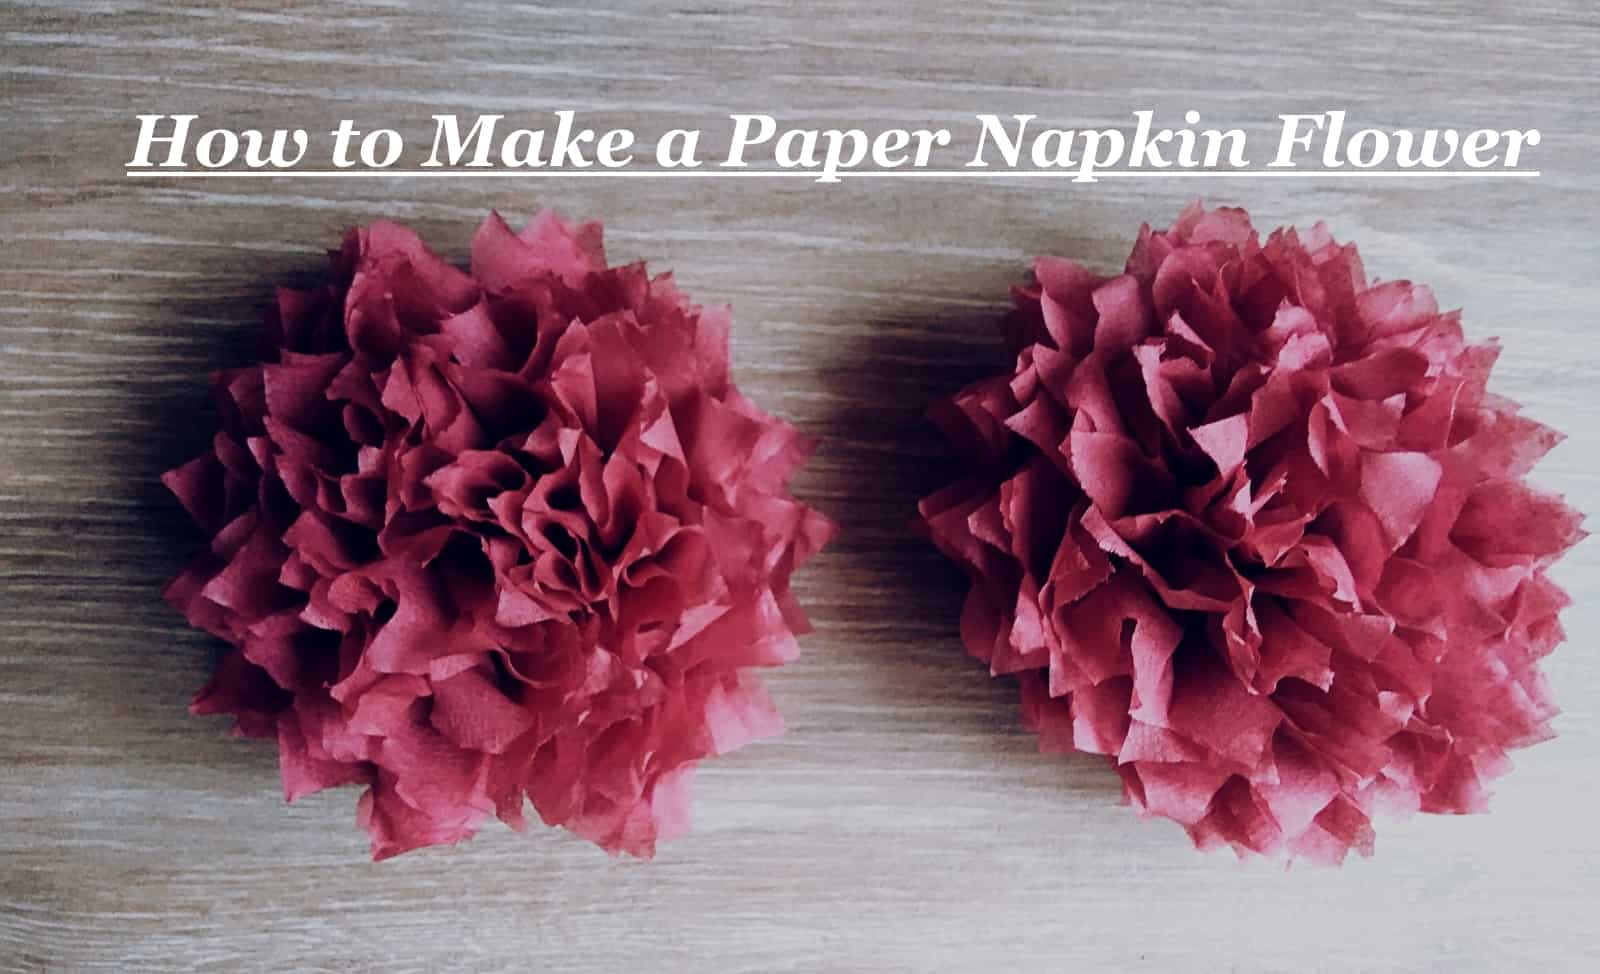 How to Make a Paper Napkin Flower-JandP-DIY